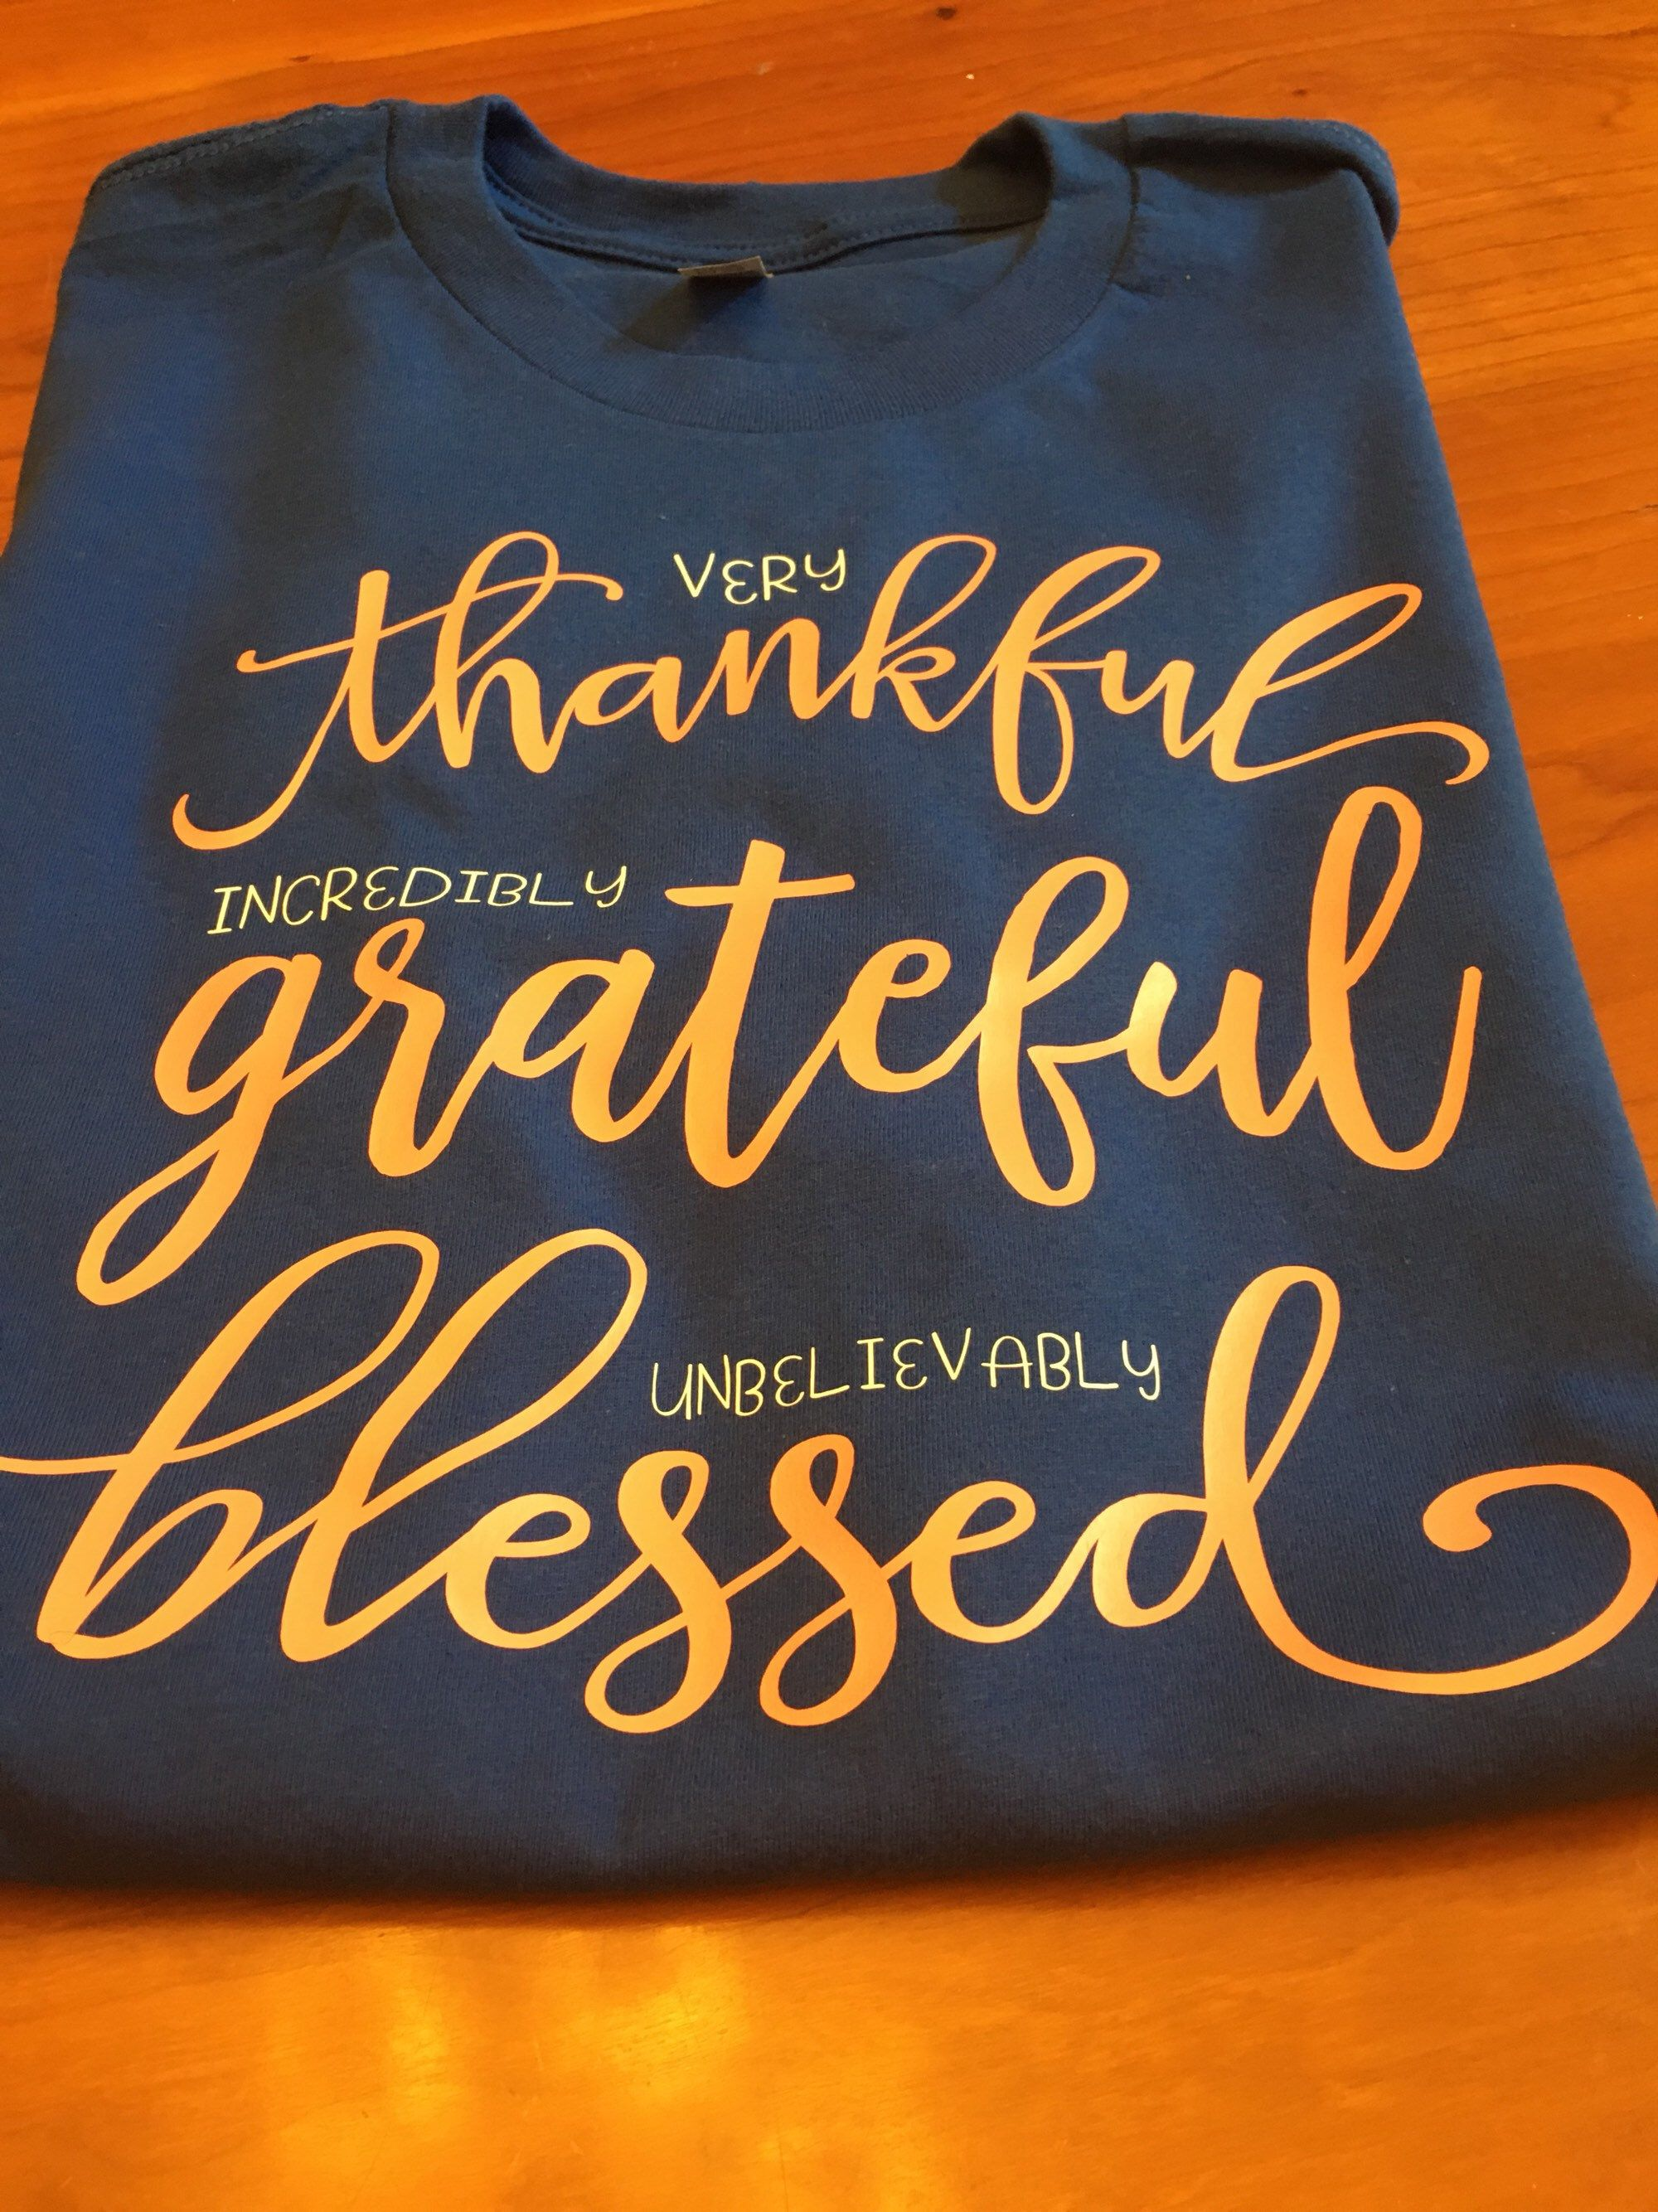 9b663d16b Excited to share this item from my #etsy shop: Thankful/grestful/blessed/Christian  t-shirt/ Christian apparel/ Faith/ soft t-shirts/ soft christian apparel/  ...